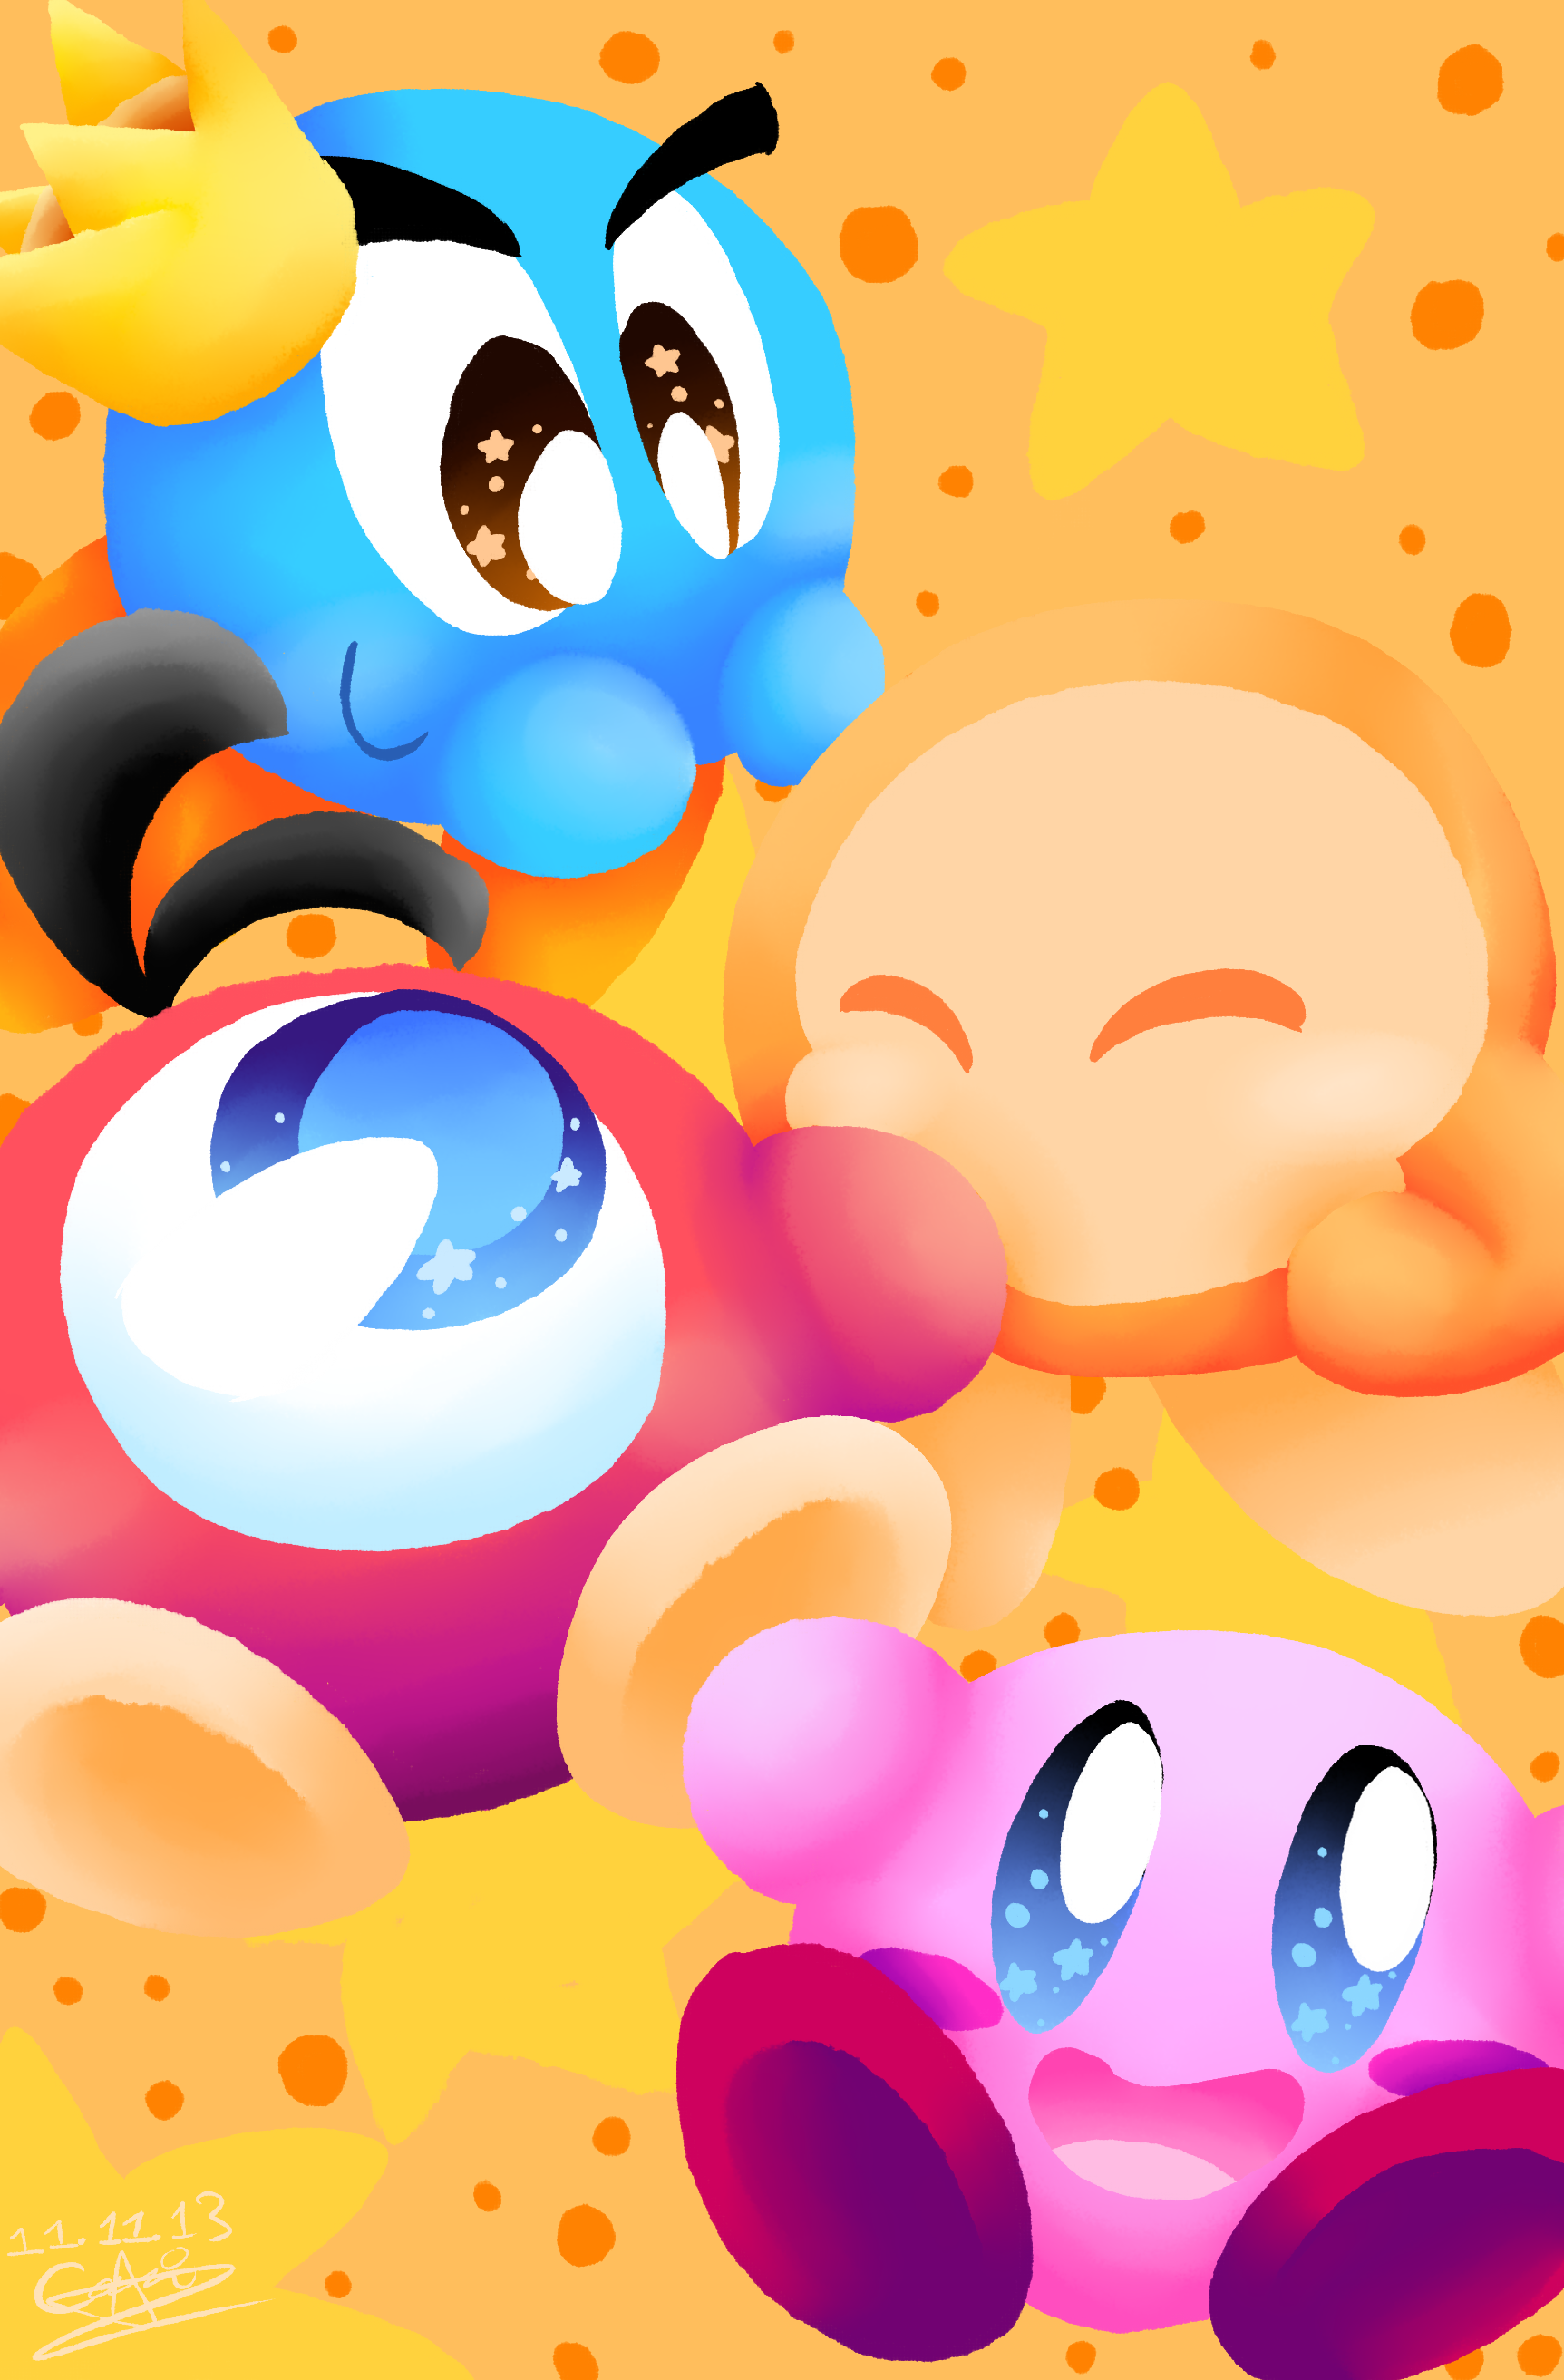 Kirby's Dream Zine Submission 2 by CinnamonMuffins